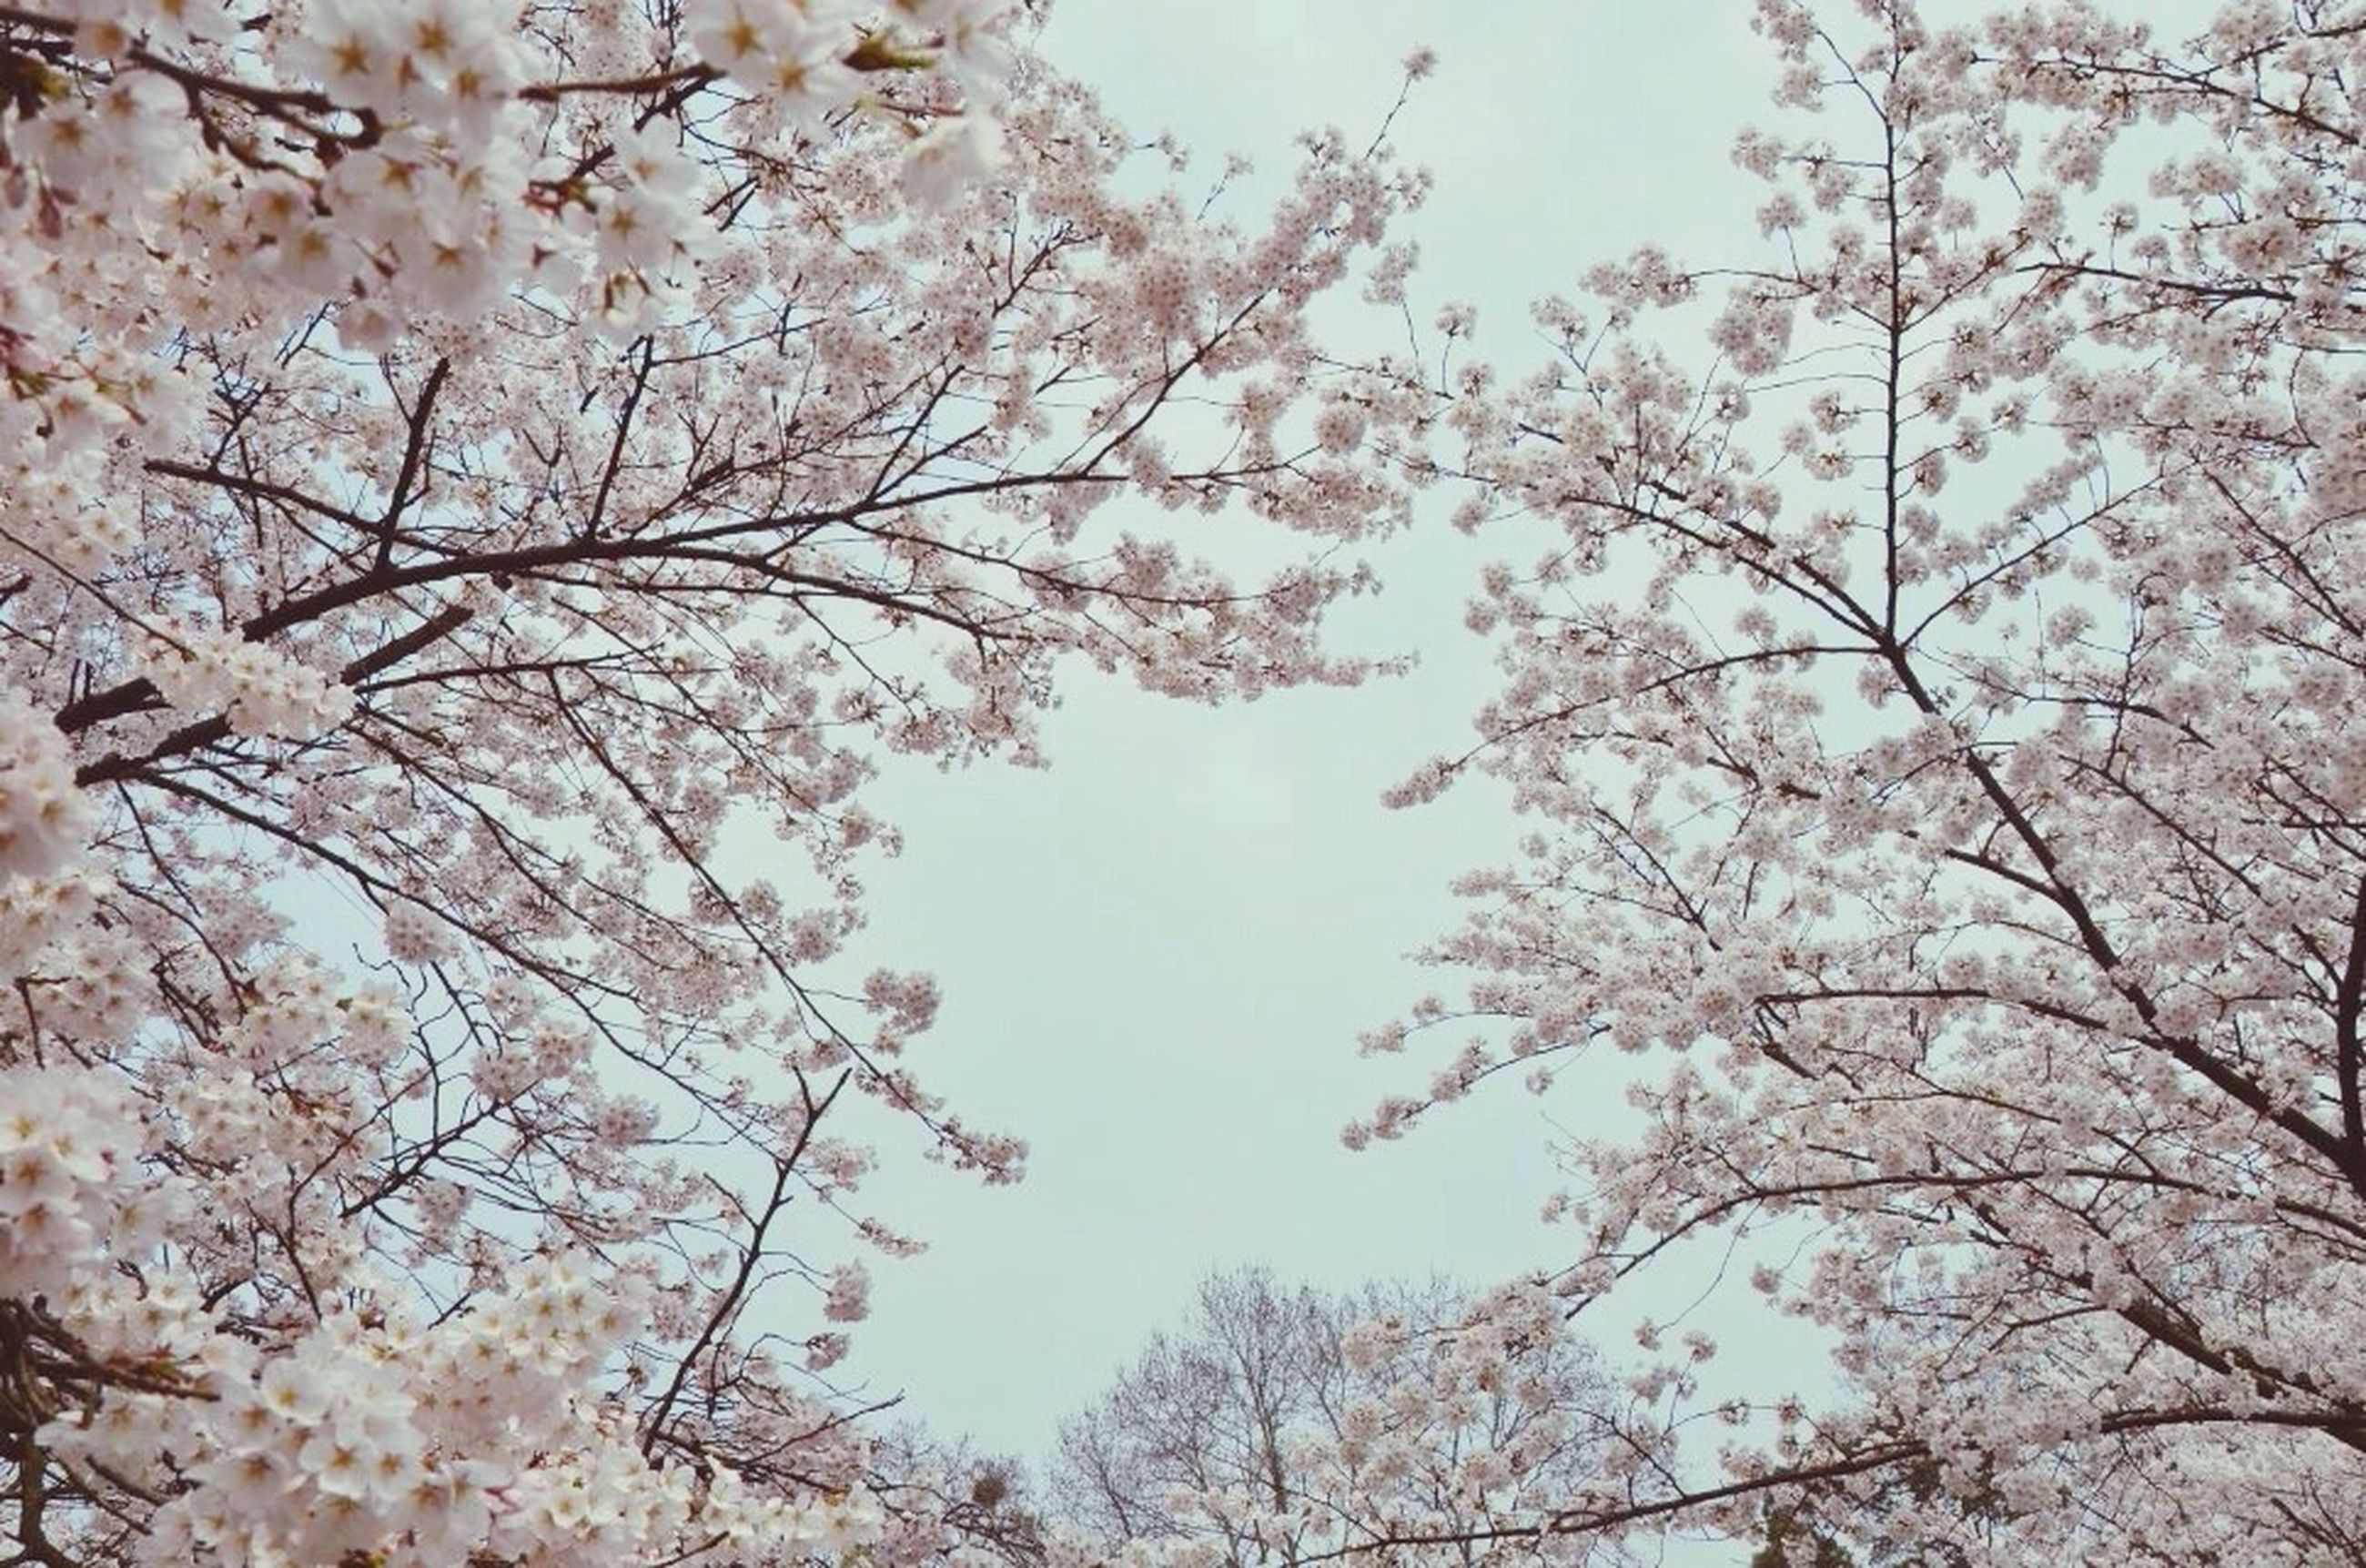 flower, tree, branch, growth, freshness, cherry blossom, low angle view, beauty in nature, blossom, nature, cherry tree, fragility, clear sky, springtime, white color, in bloom, blooming, day, outdoors, sky